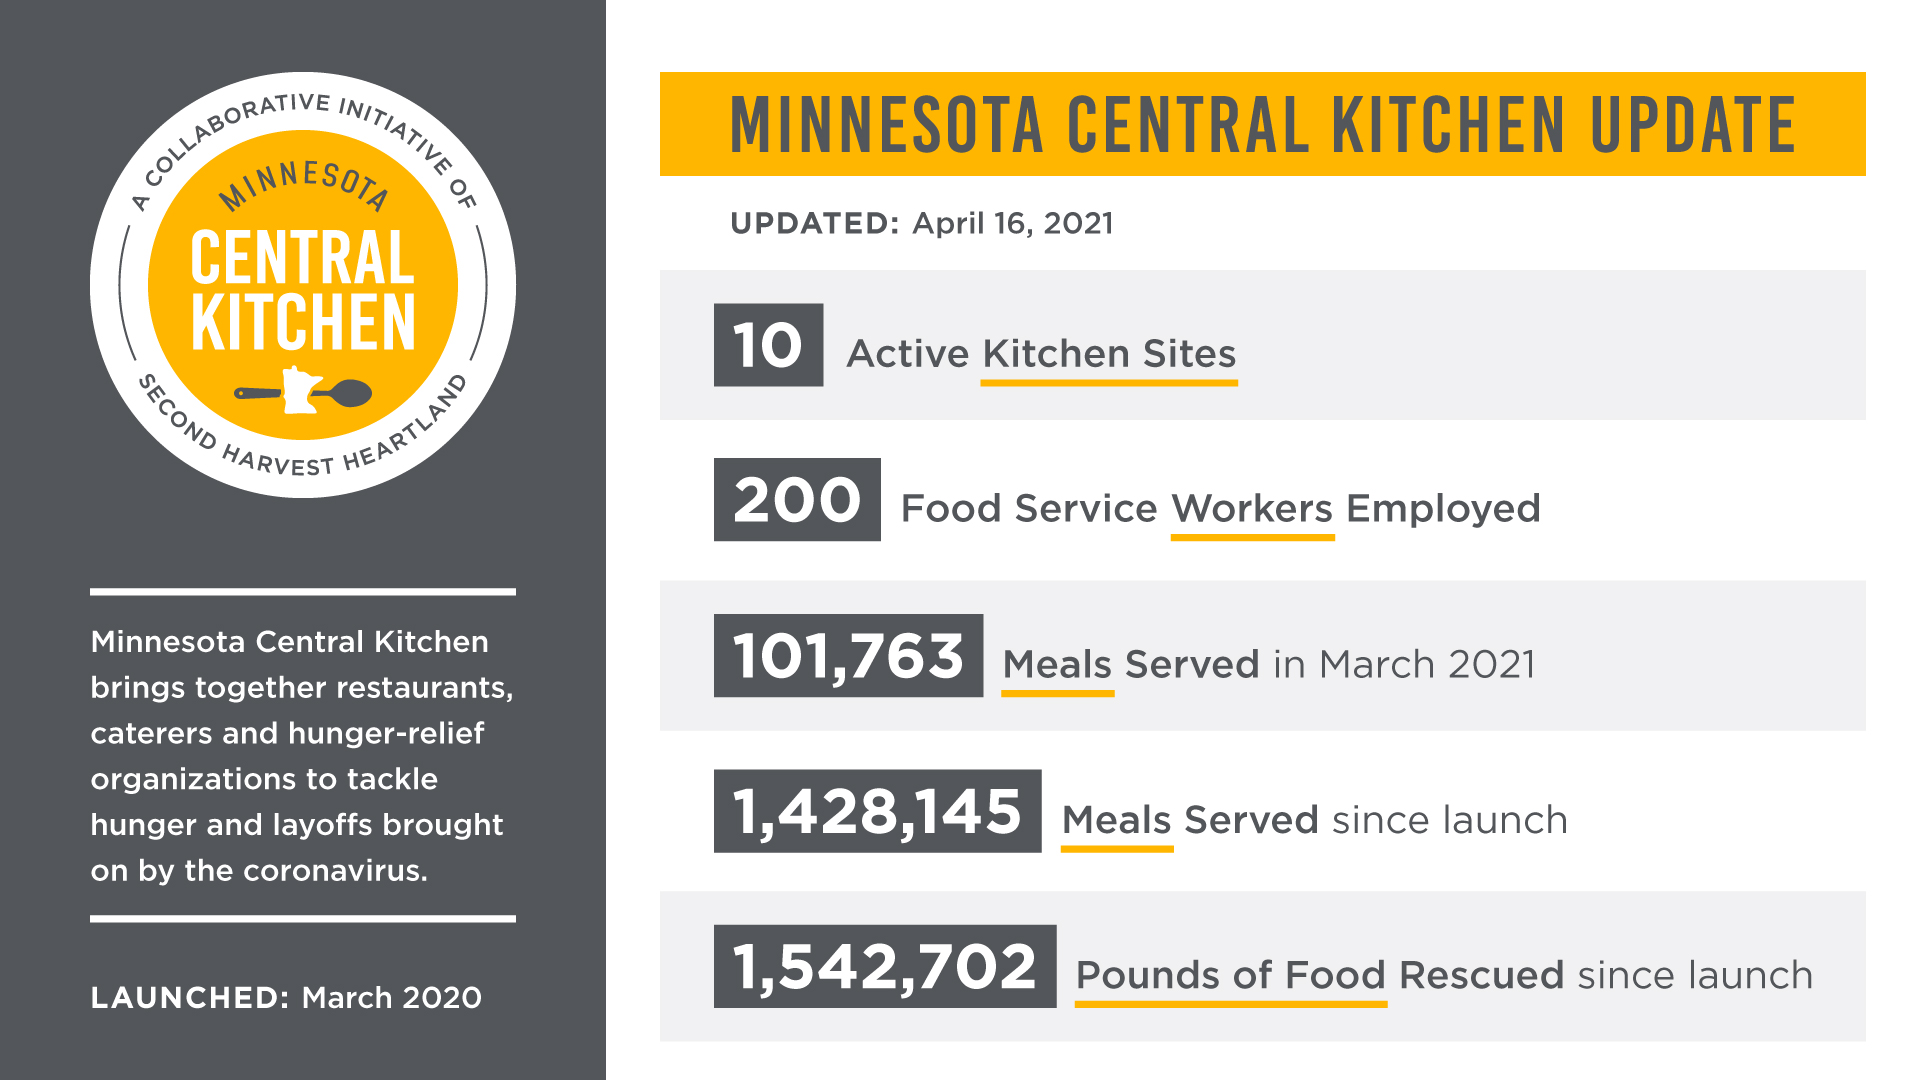 Minnesota Central Kitchen Update March 16, 2021: 9 active kitchen sites. 179 food service workers employed. 72,509 meals served in February 2021. 1,326,382 meals served since launch. 1,457,392 pounds of food rescued since launch.